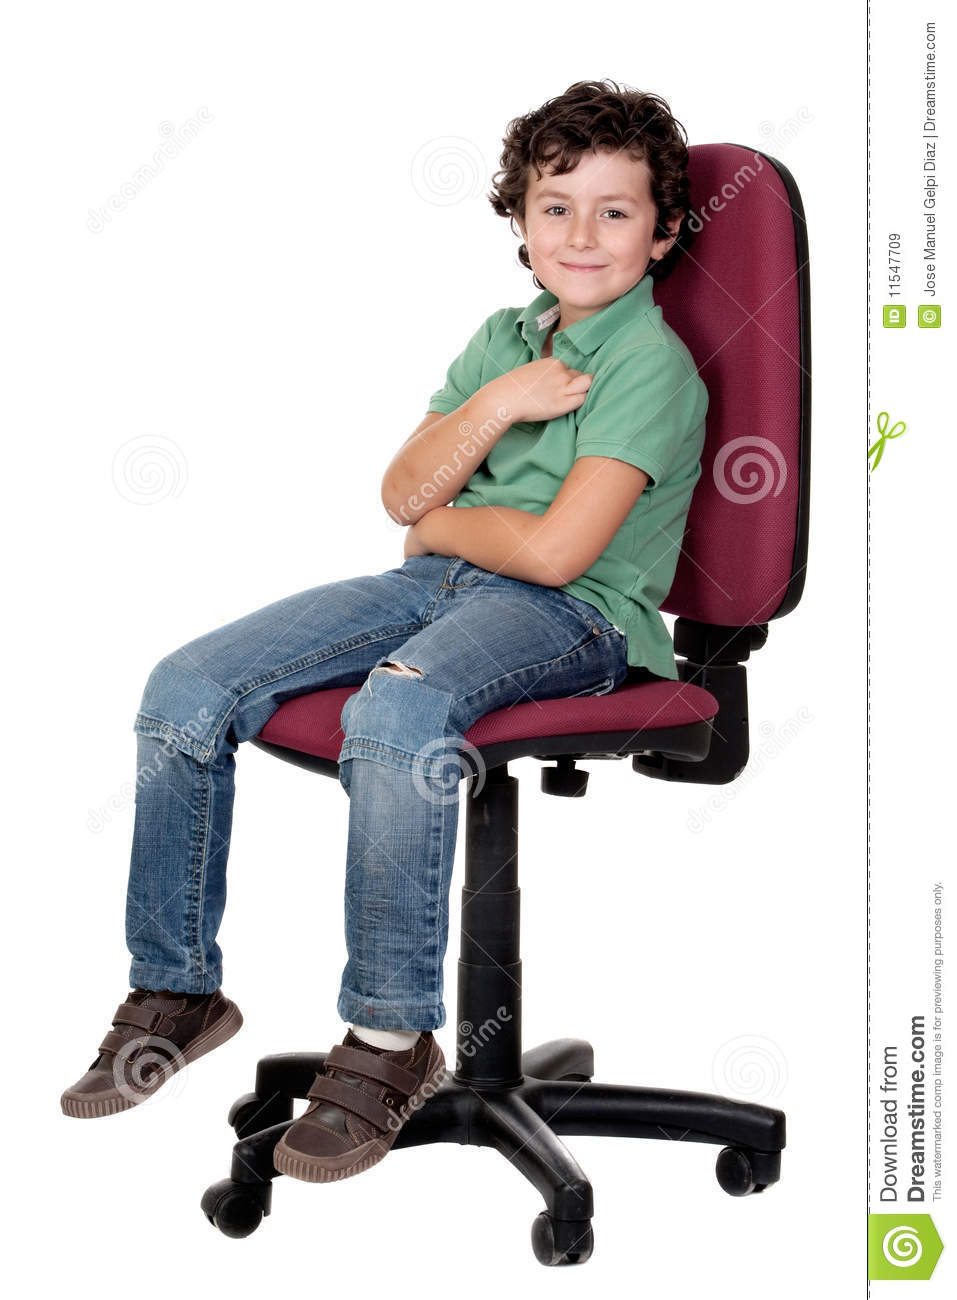 Adorable Little Boy Sitting On Big Chair Royalty Free